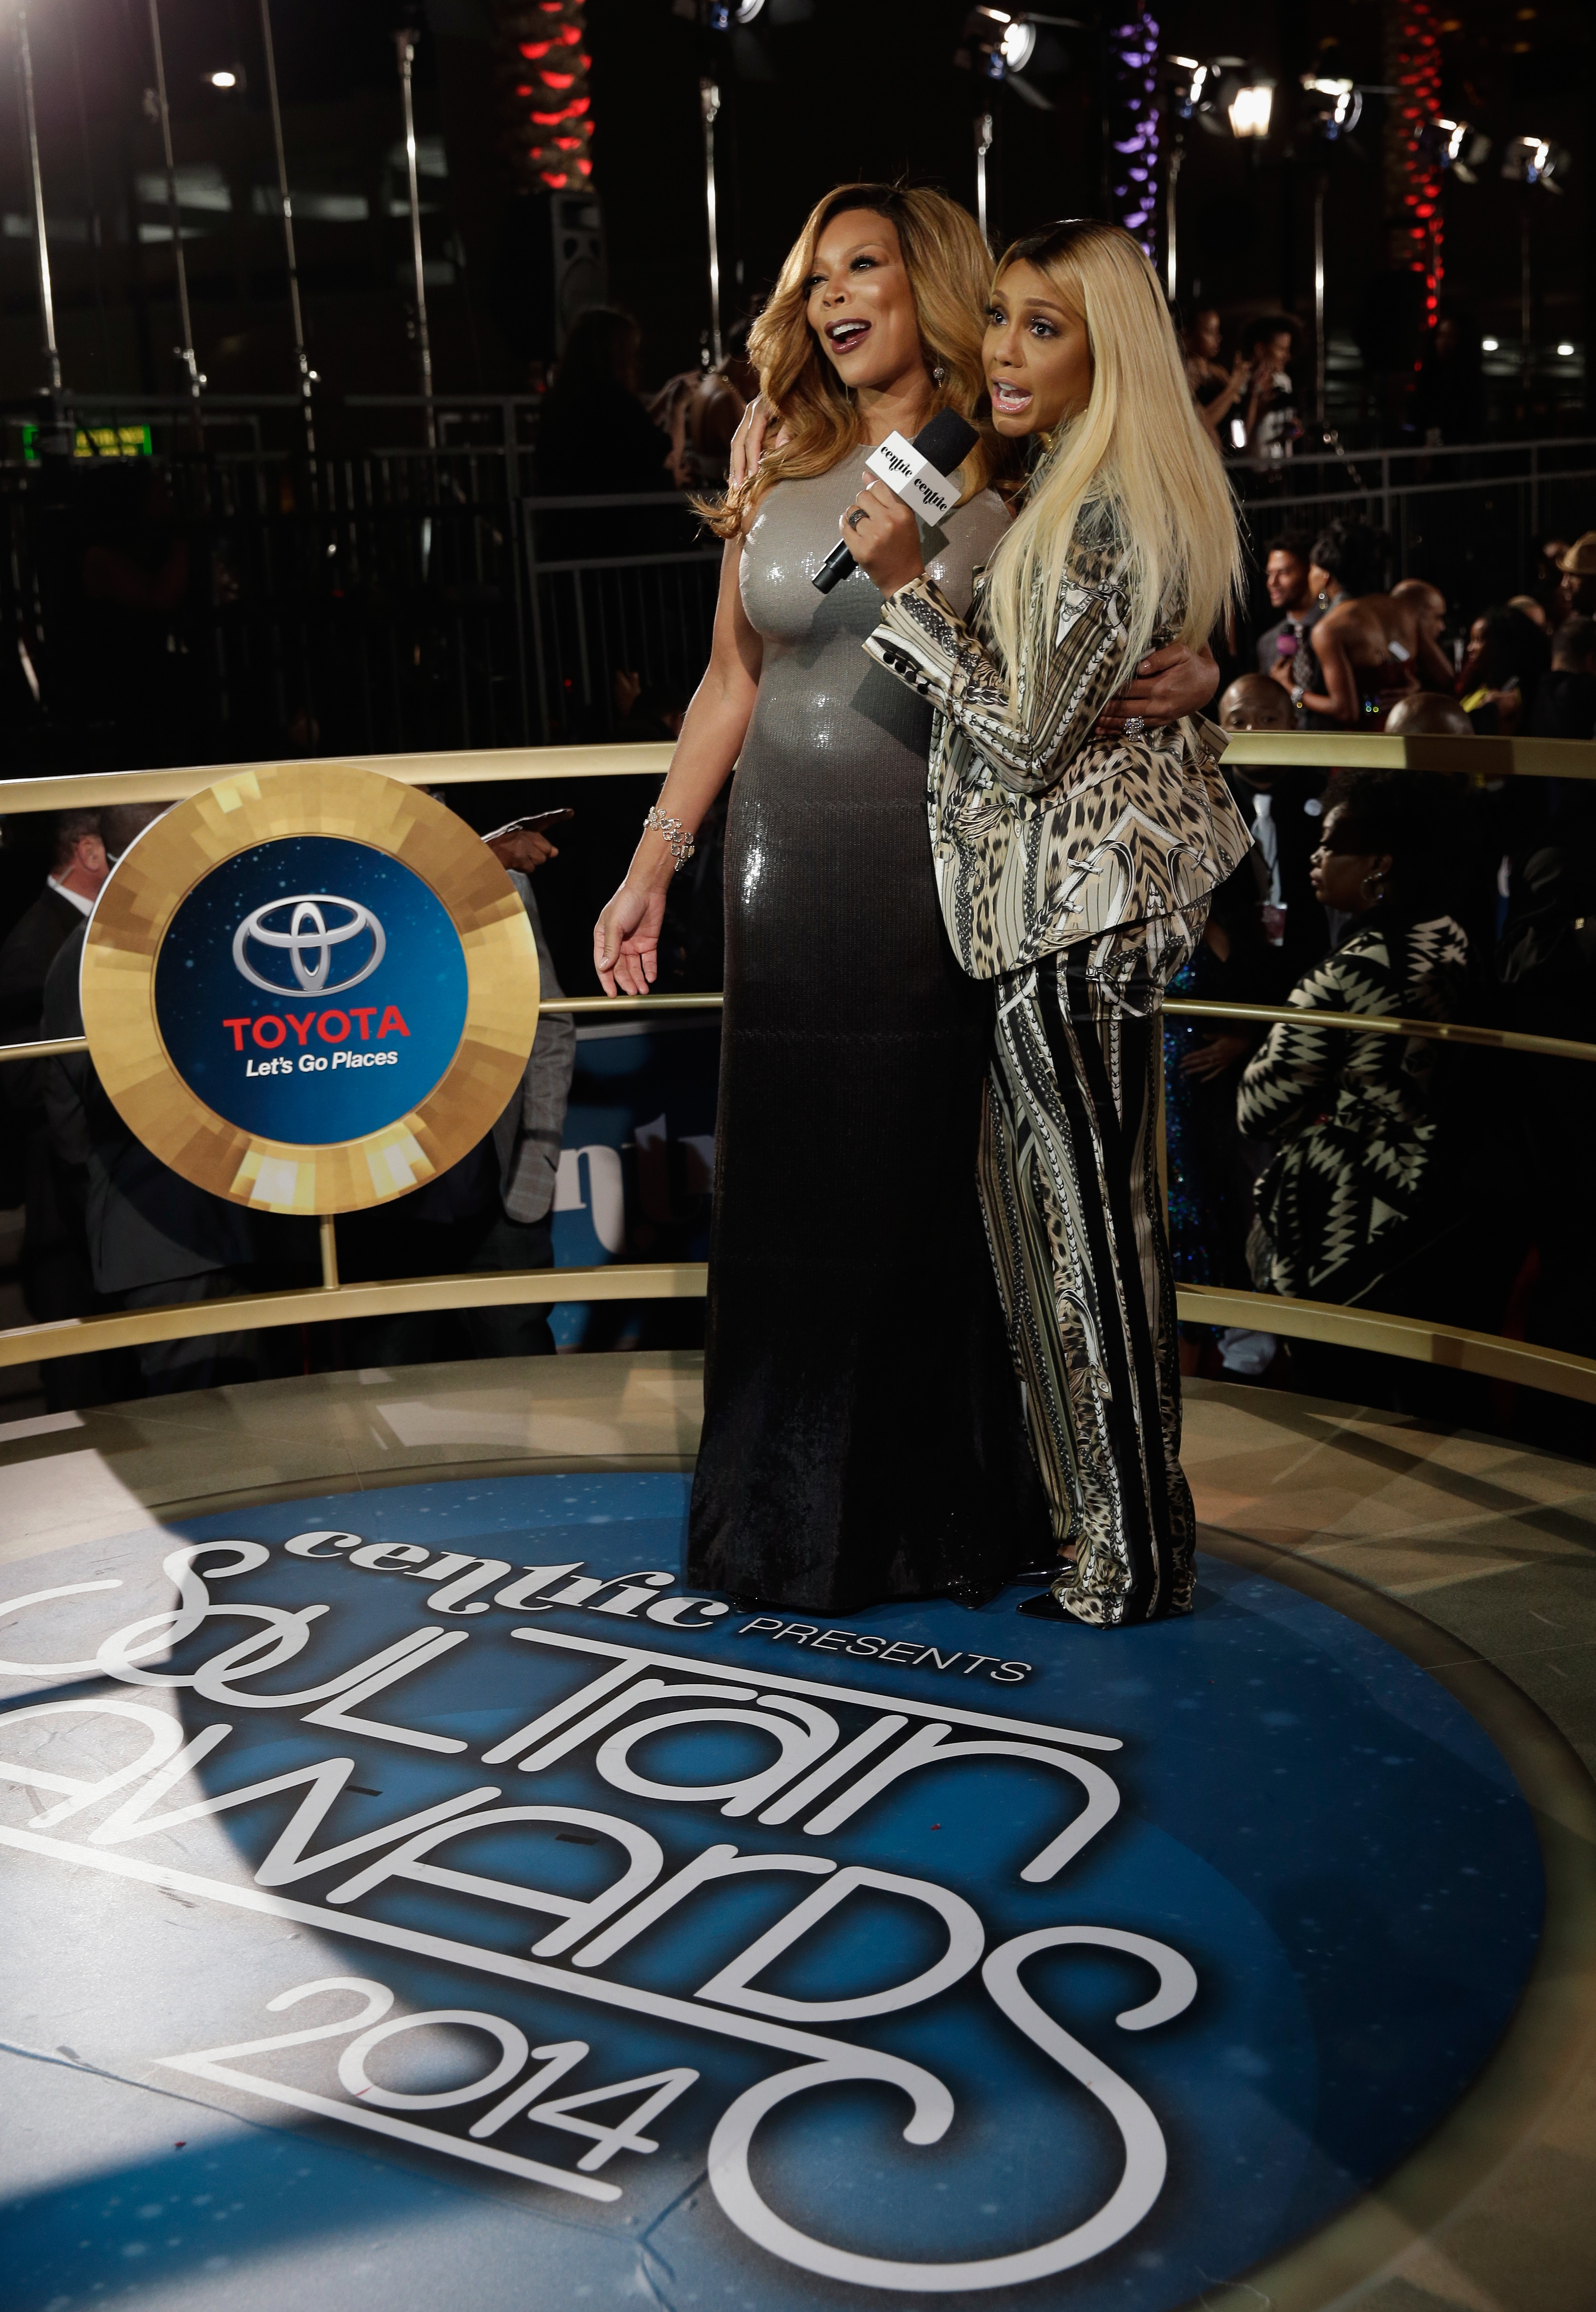 LAS VEGAS, NV - NOVEMBER 07:  TV host Wendy Williams (L) and singer Tamar Braxton attend the 2014 Soul Train Music Awards at the Orleans Arena on November 7, 2014 in Las Vegas, Nevada.  (Photo by Isaac Brekken/BET/Getty Images for BET)